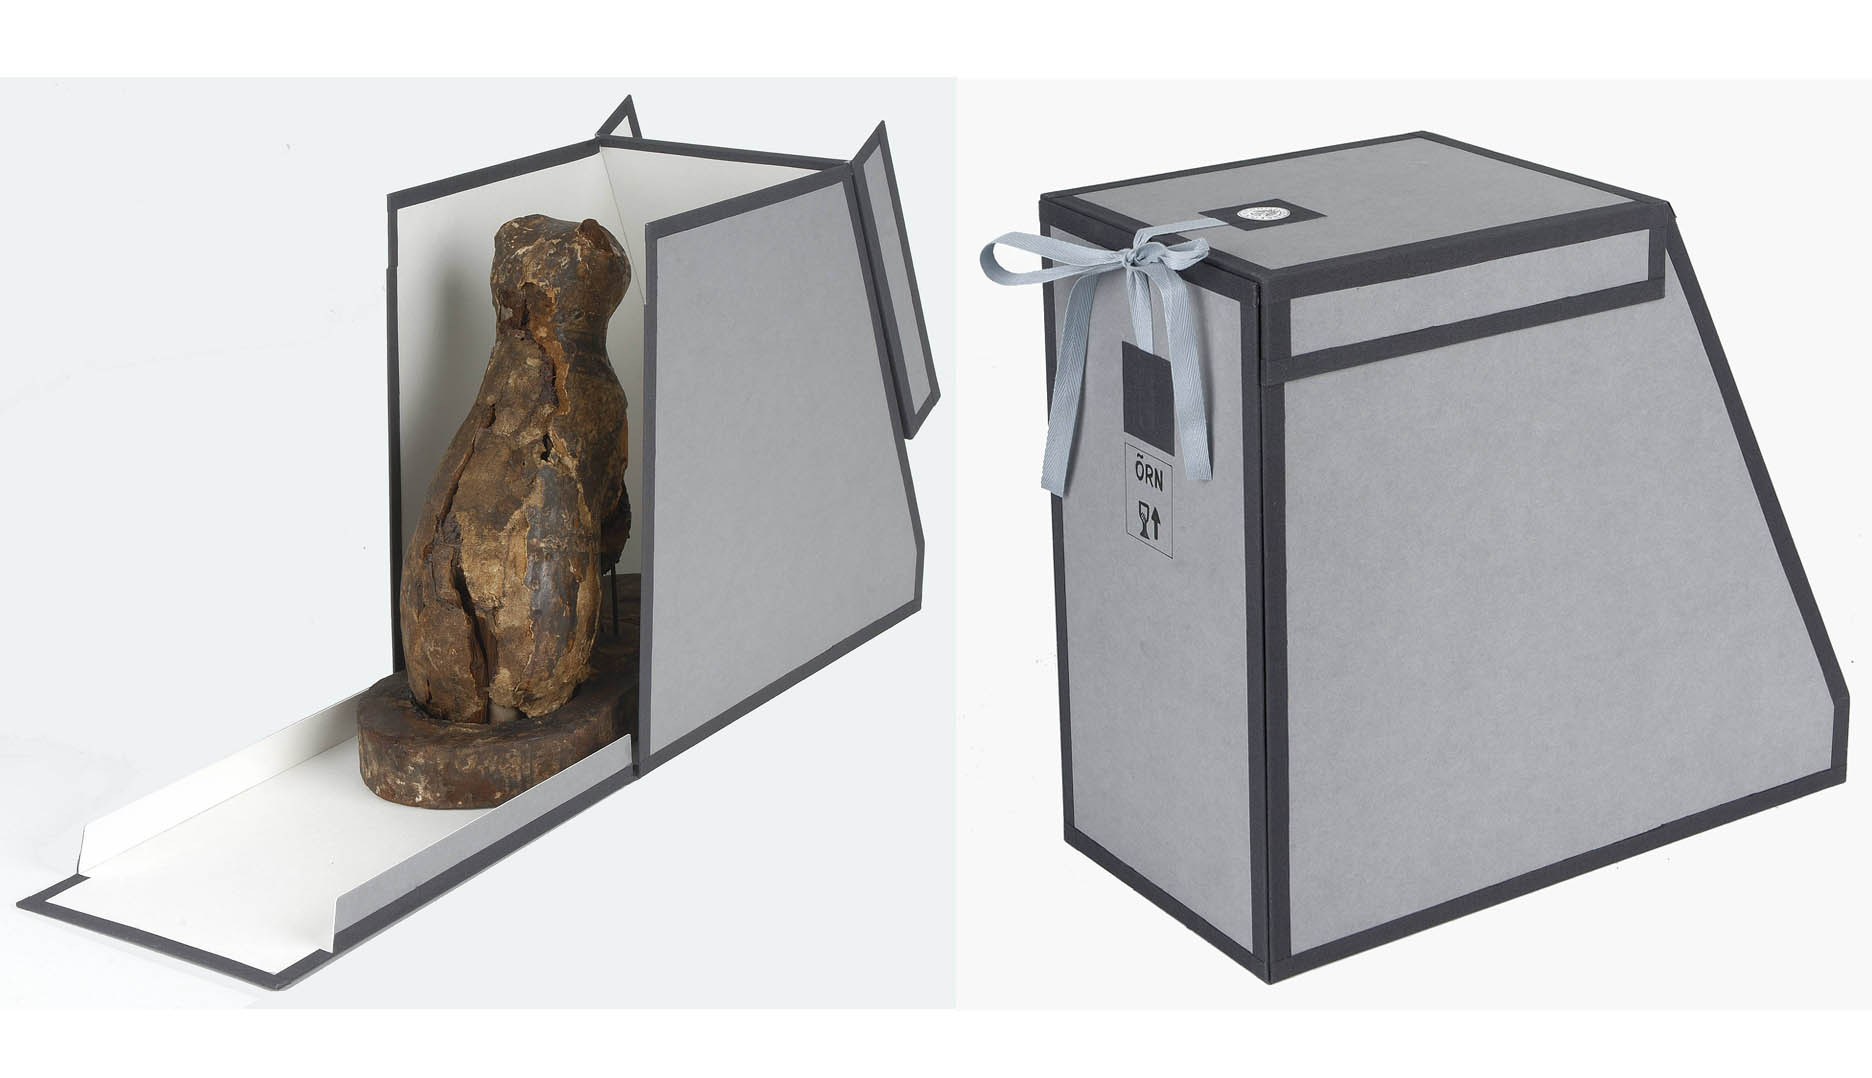 fig 14. A special case for keeping the sarcophagus was also made.